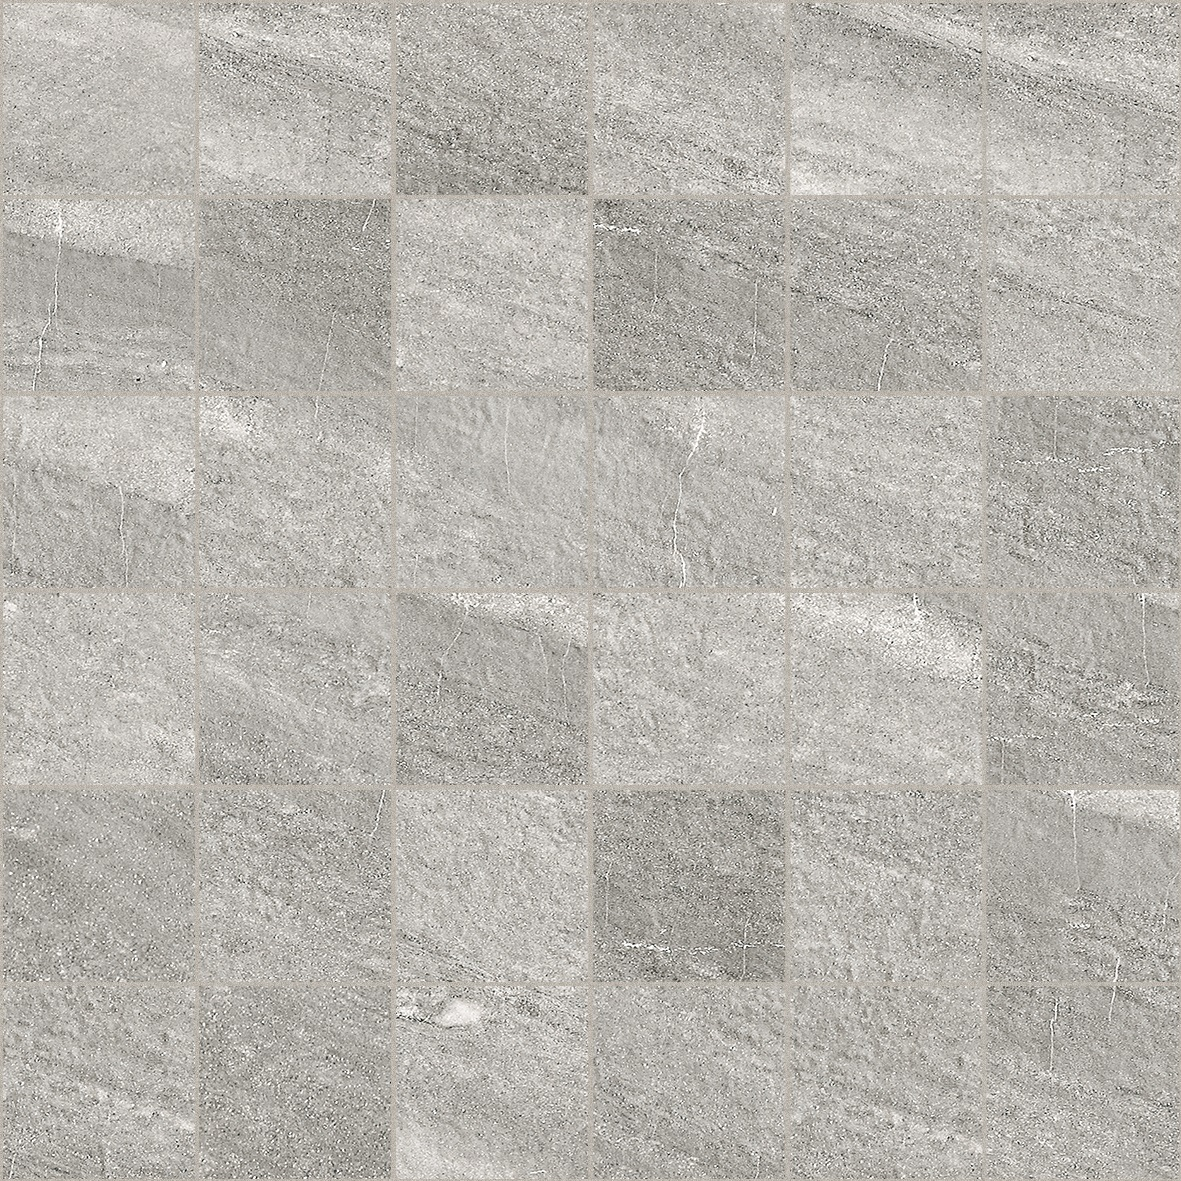 Floor Tile Collection FC236 300mm x 300mm River Gris Malla Mosaic